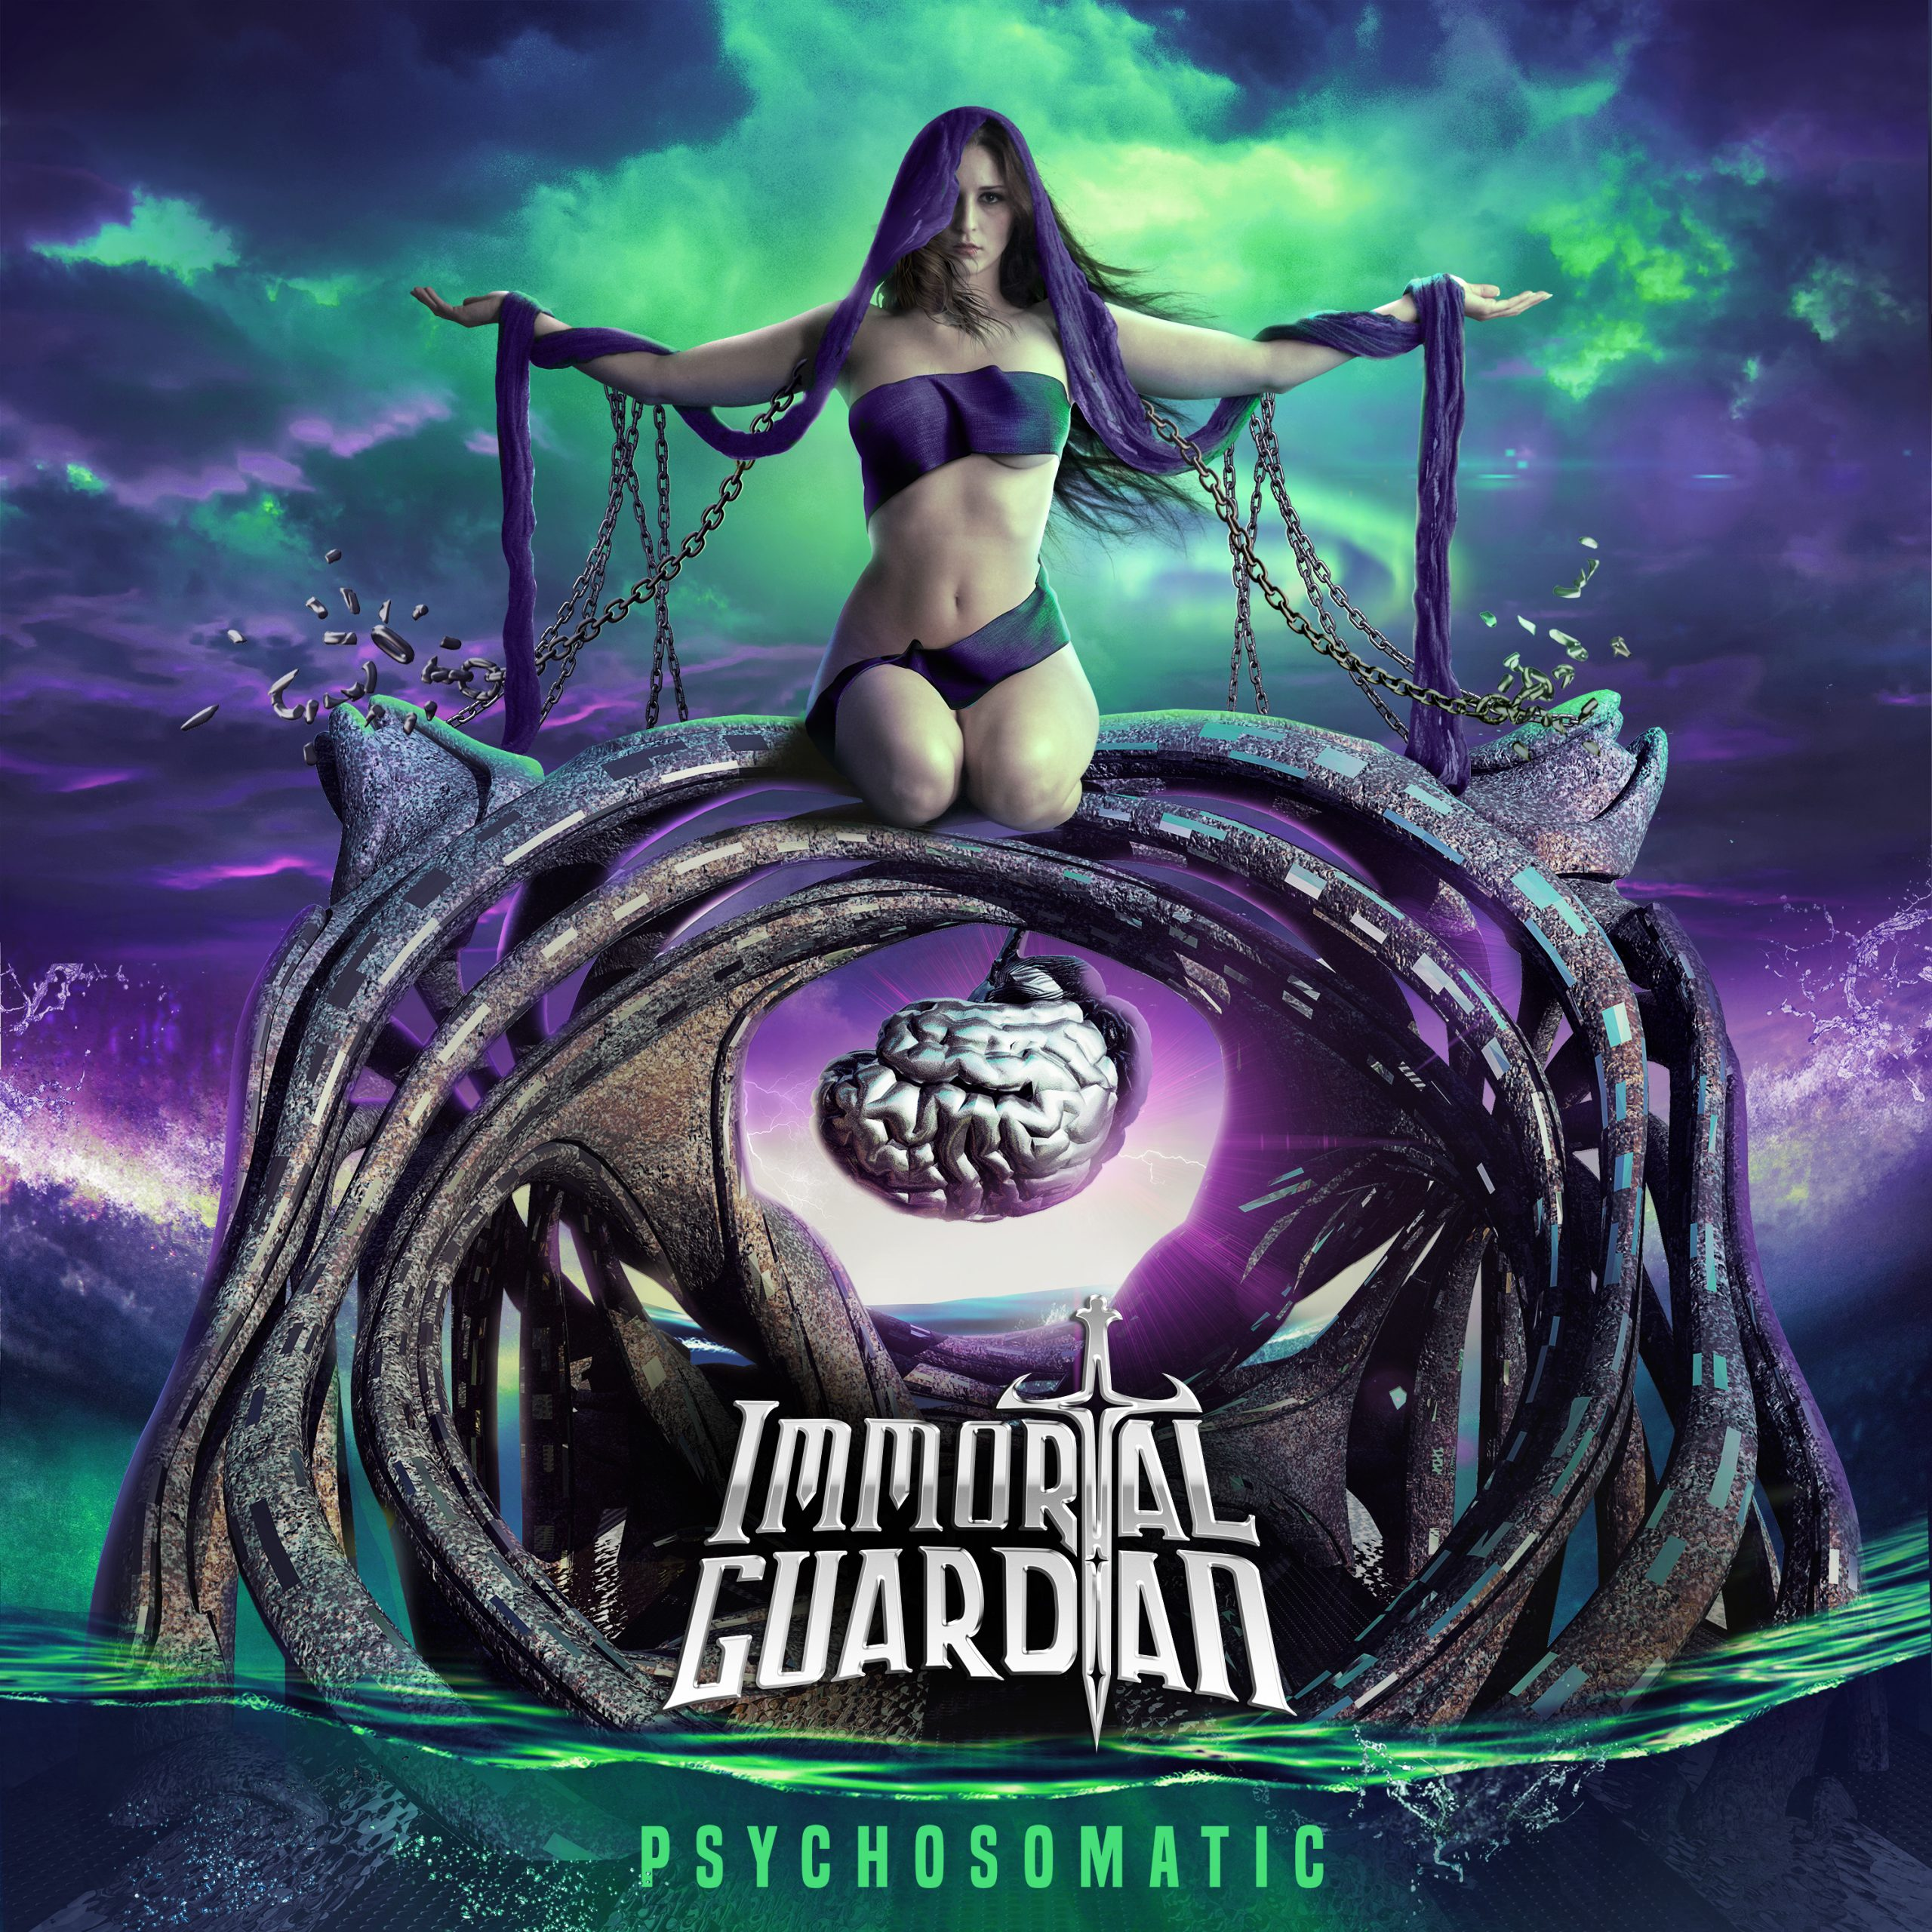 immortal-guardian-psychosomatic-die-kitsch-pandemie-album-review